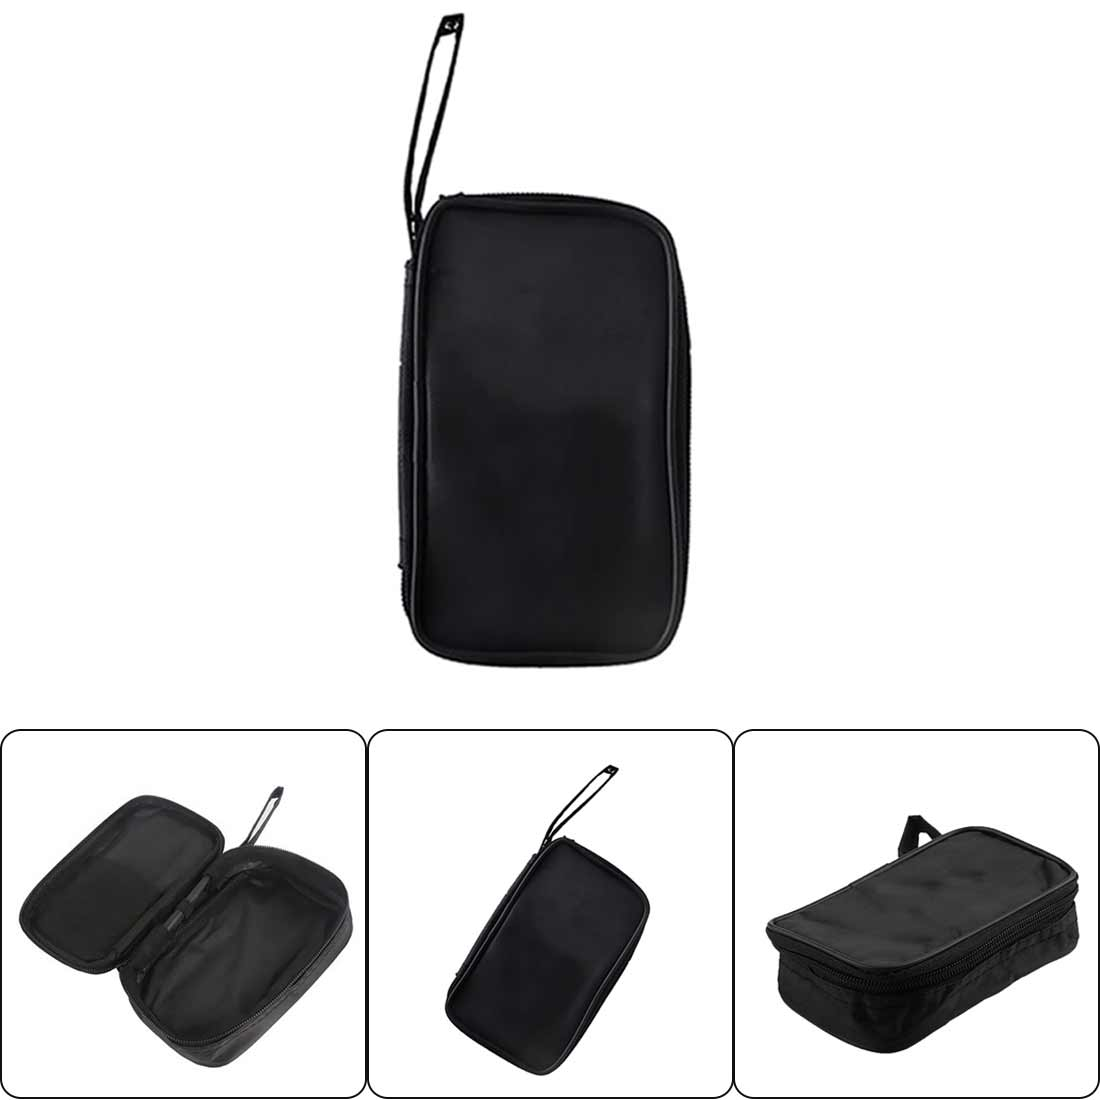 Multimeter Black Canvas Bag For UT61 Series Digital Multimeter Cloth Durable Waterproof Tools Bag 23x14x5cm